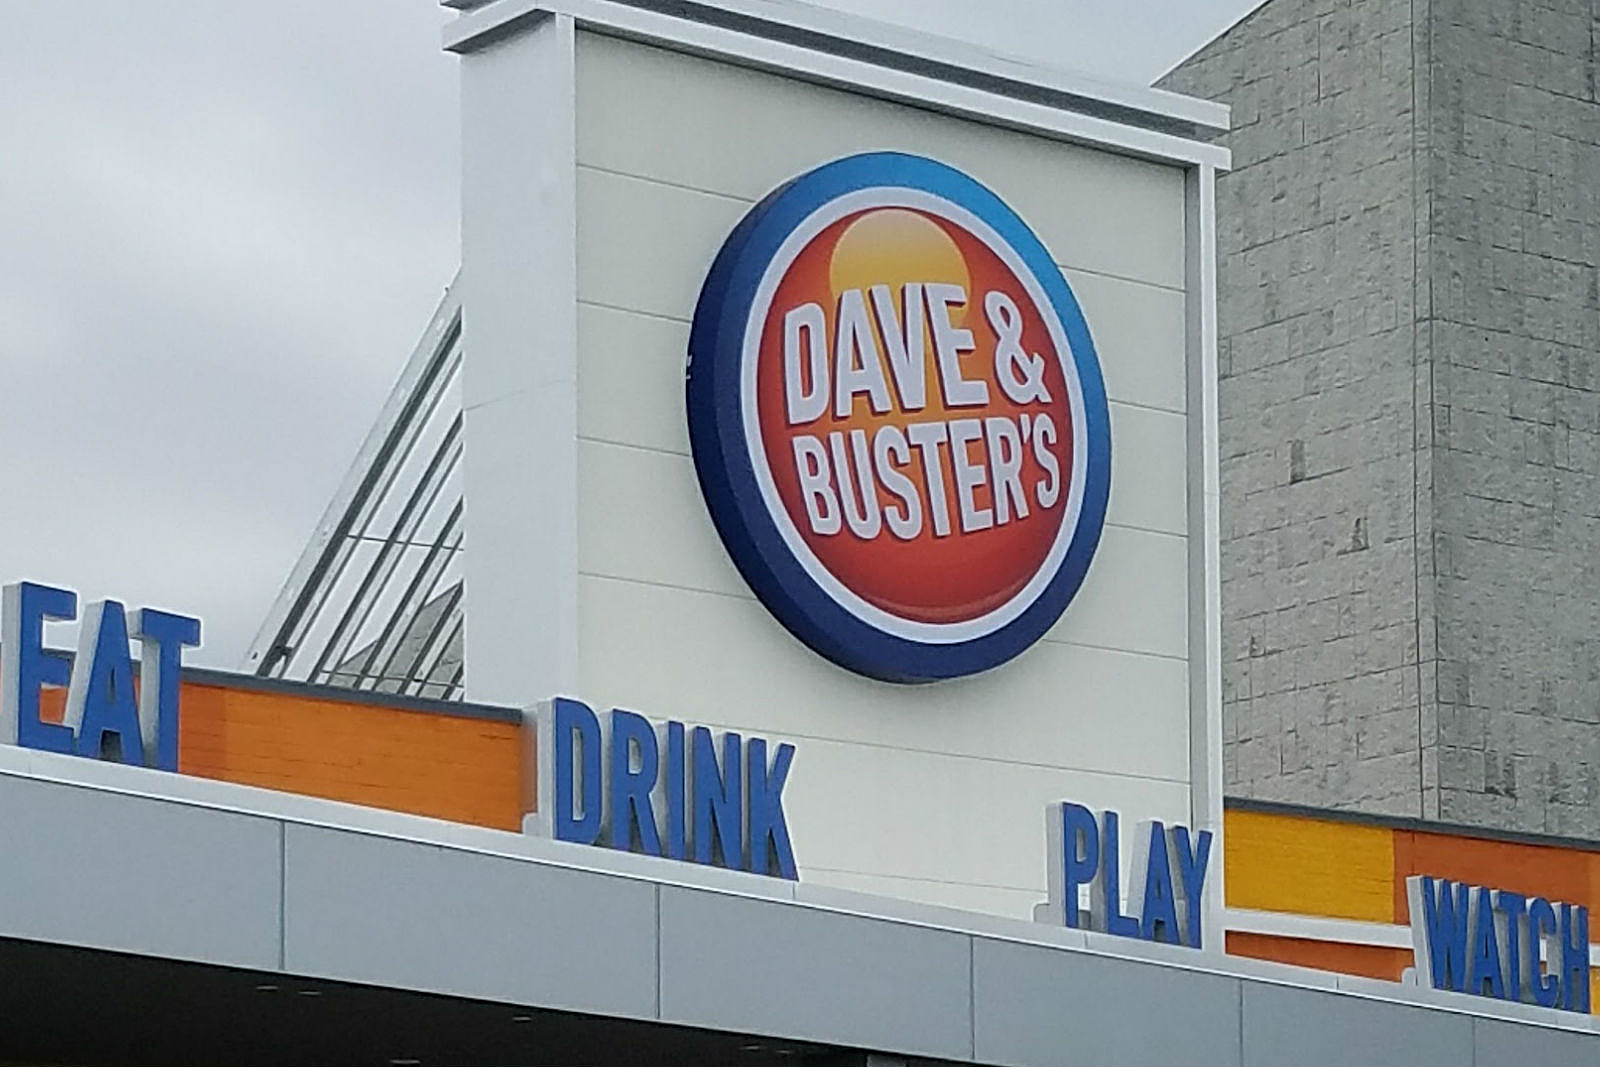 A new Dave & Buster's is coming to NJ — its 3rd in Garden State